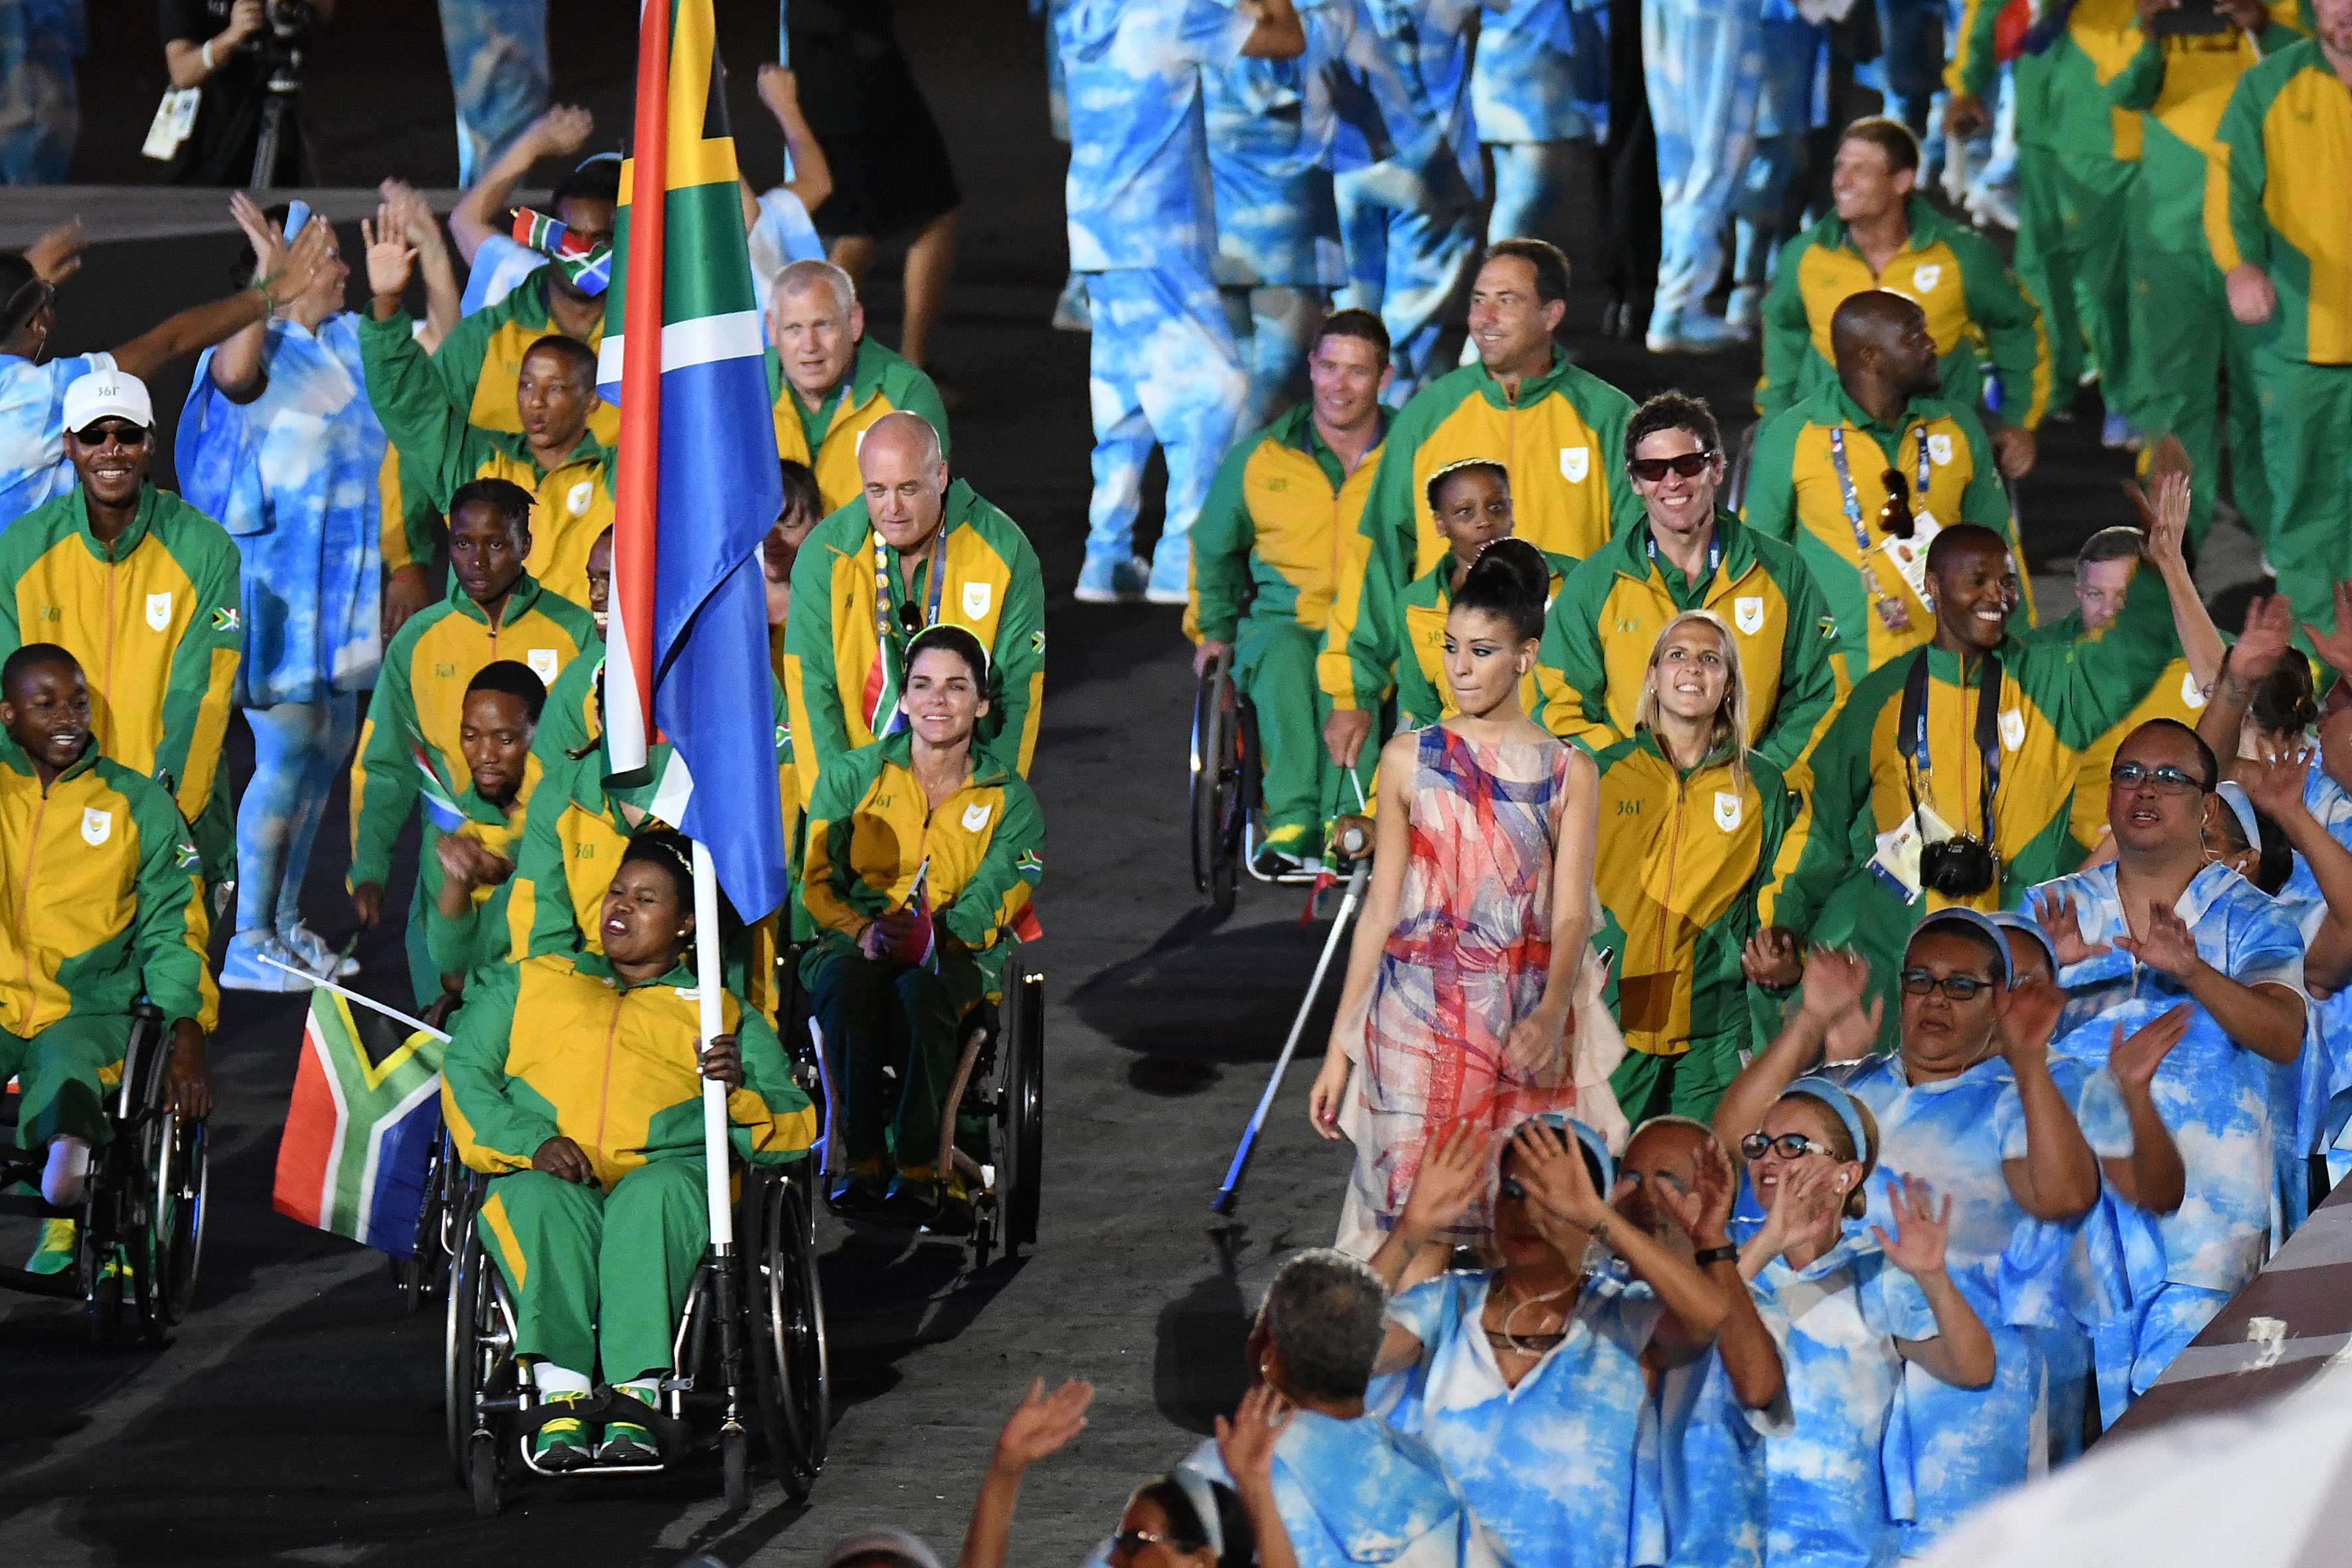 Team SA experience spectacular opening ceremony... now for the action!